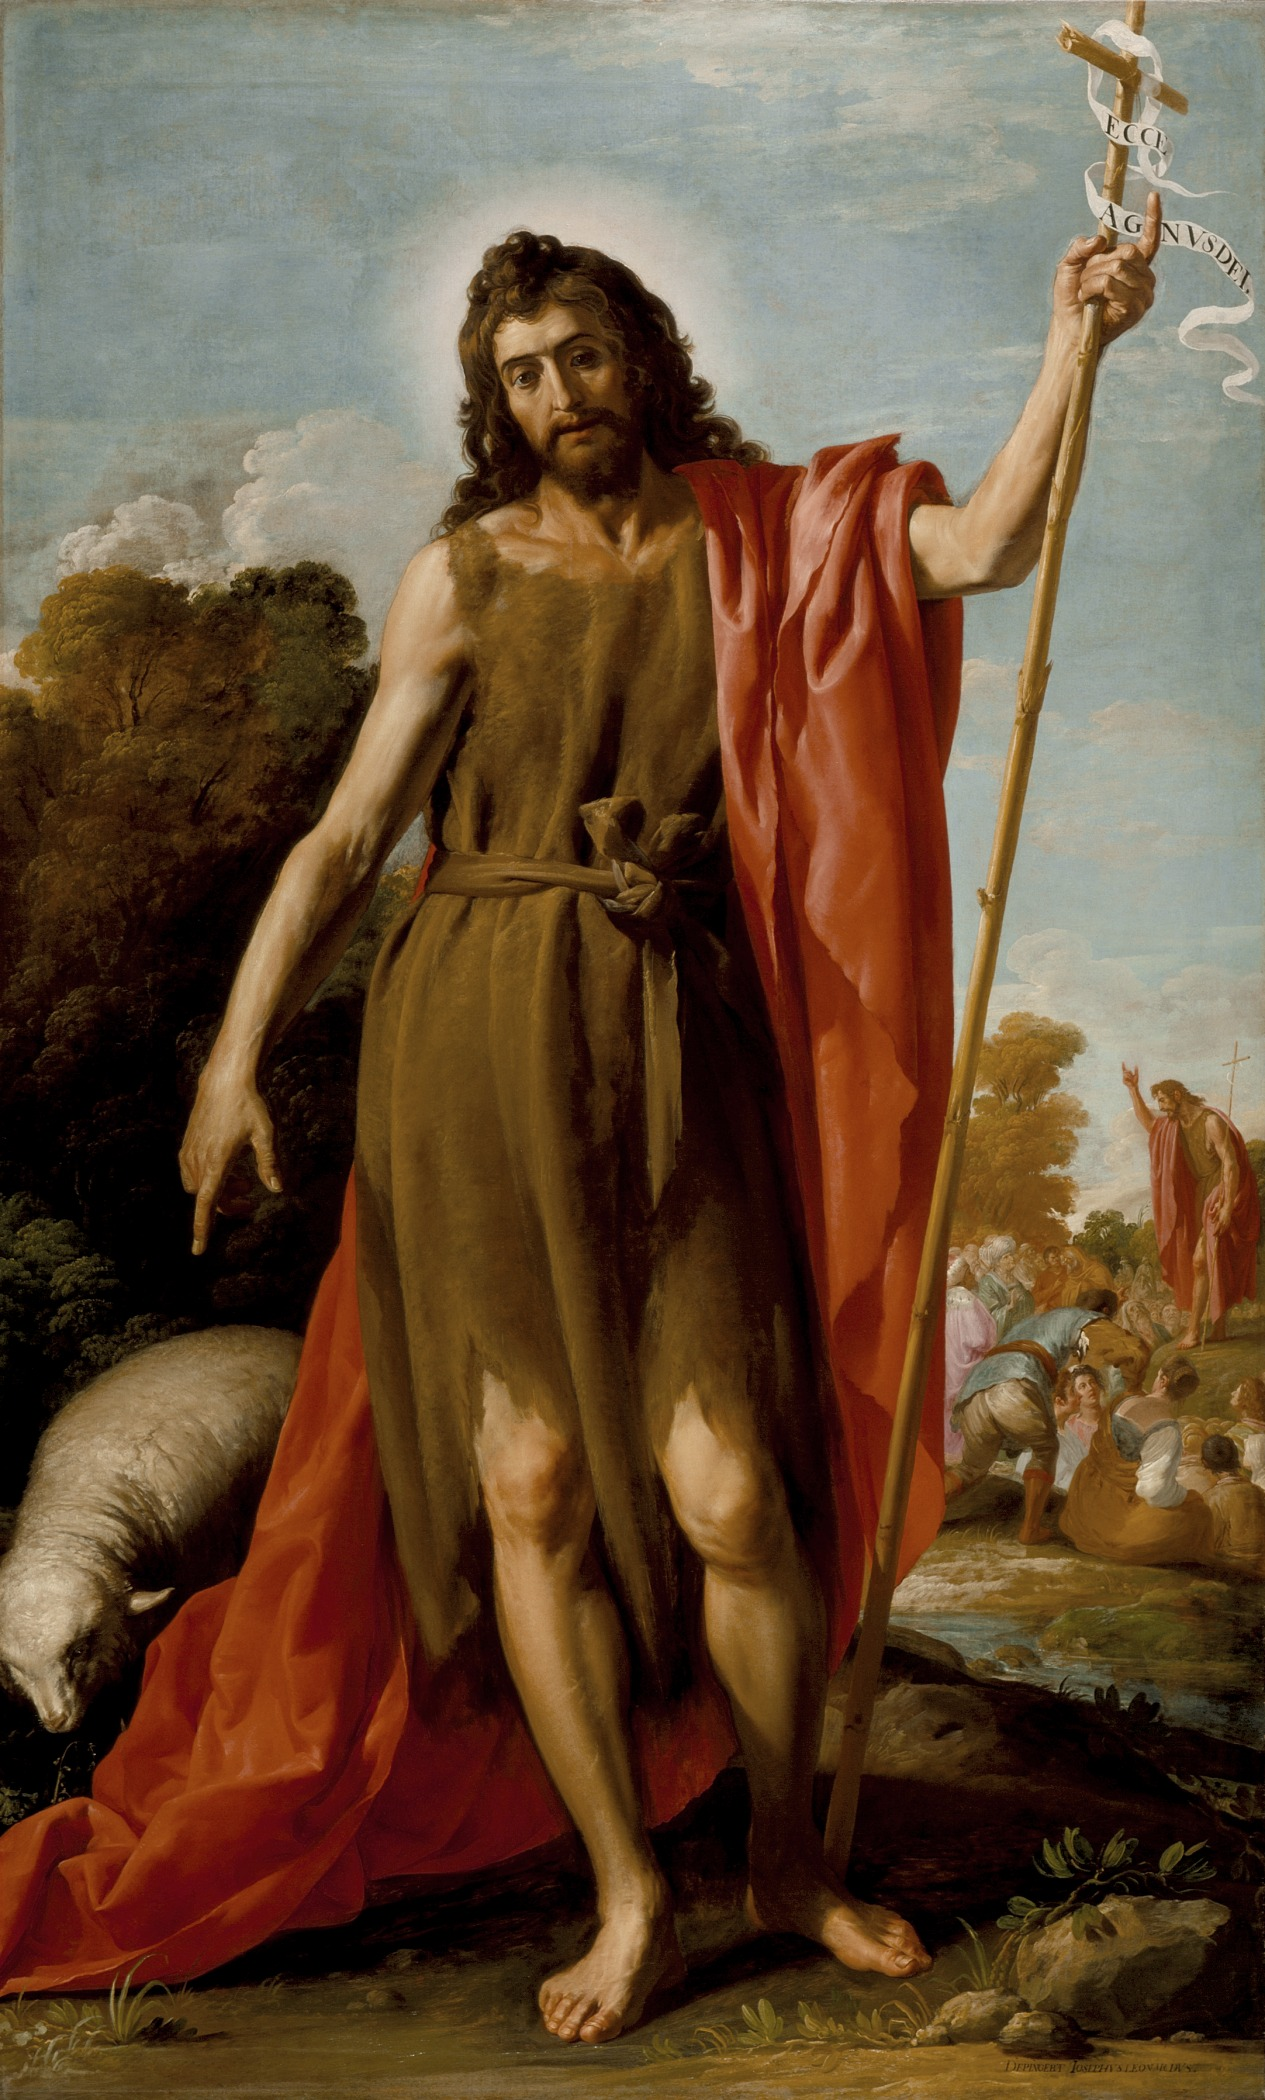 Jose Leonardo - Saint John the Baptist in the Wilderness